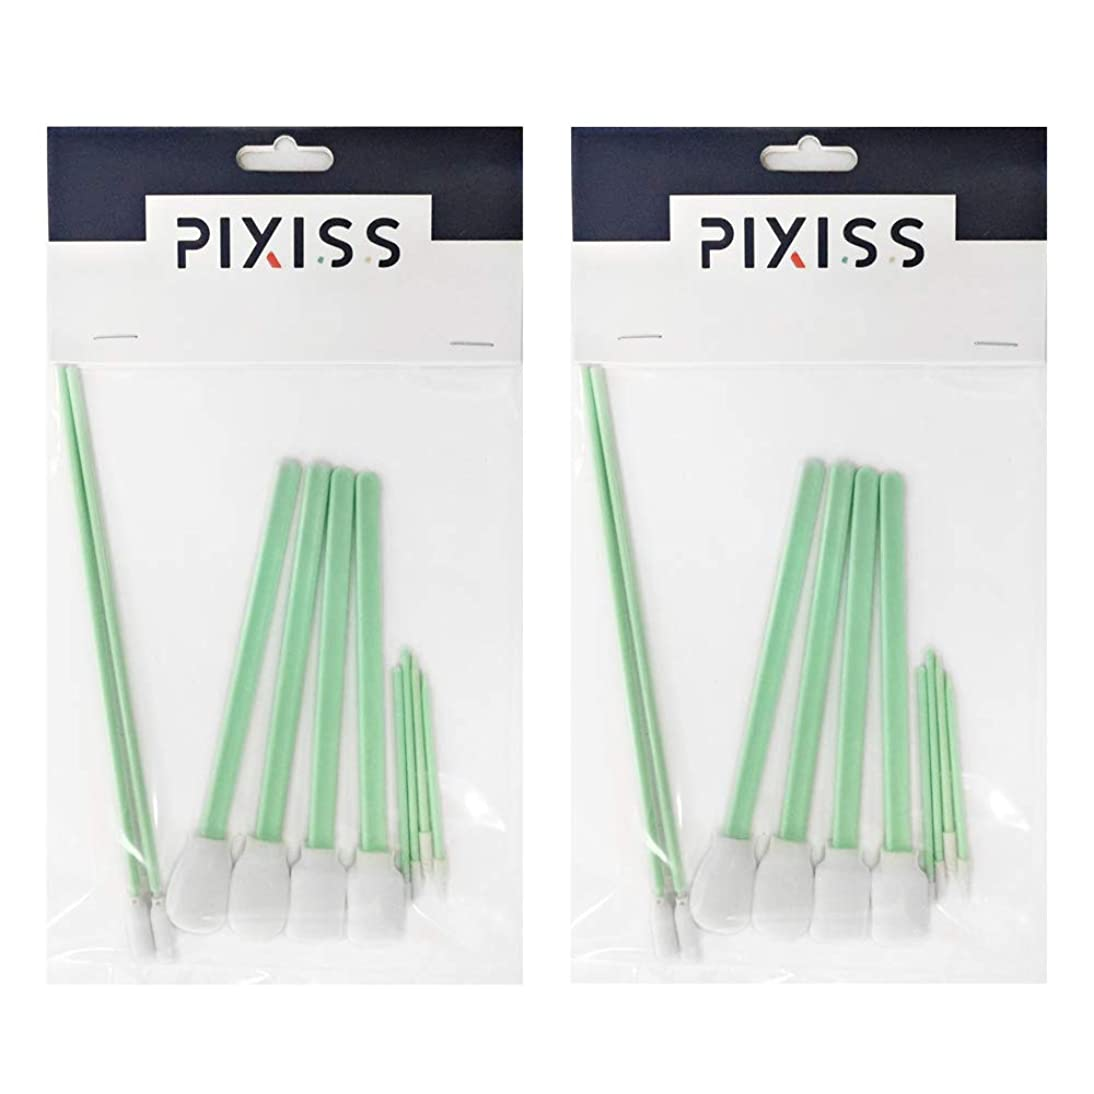 2 Pack - 10 Pixiss Detail Alcohol Ink Blending Tools (5 Different Sizes), Foam Tips for Blending Inks, Chalks, Markers, Pencil, Charcoal on Yupo Paper and Other Mediums